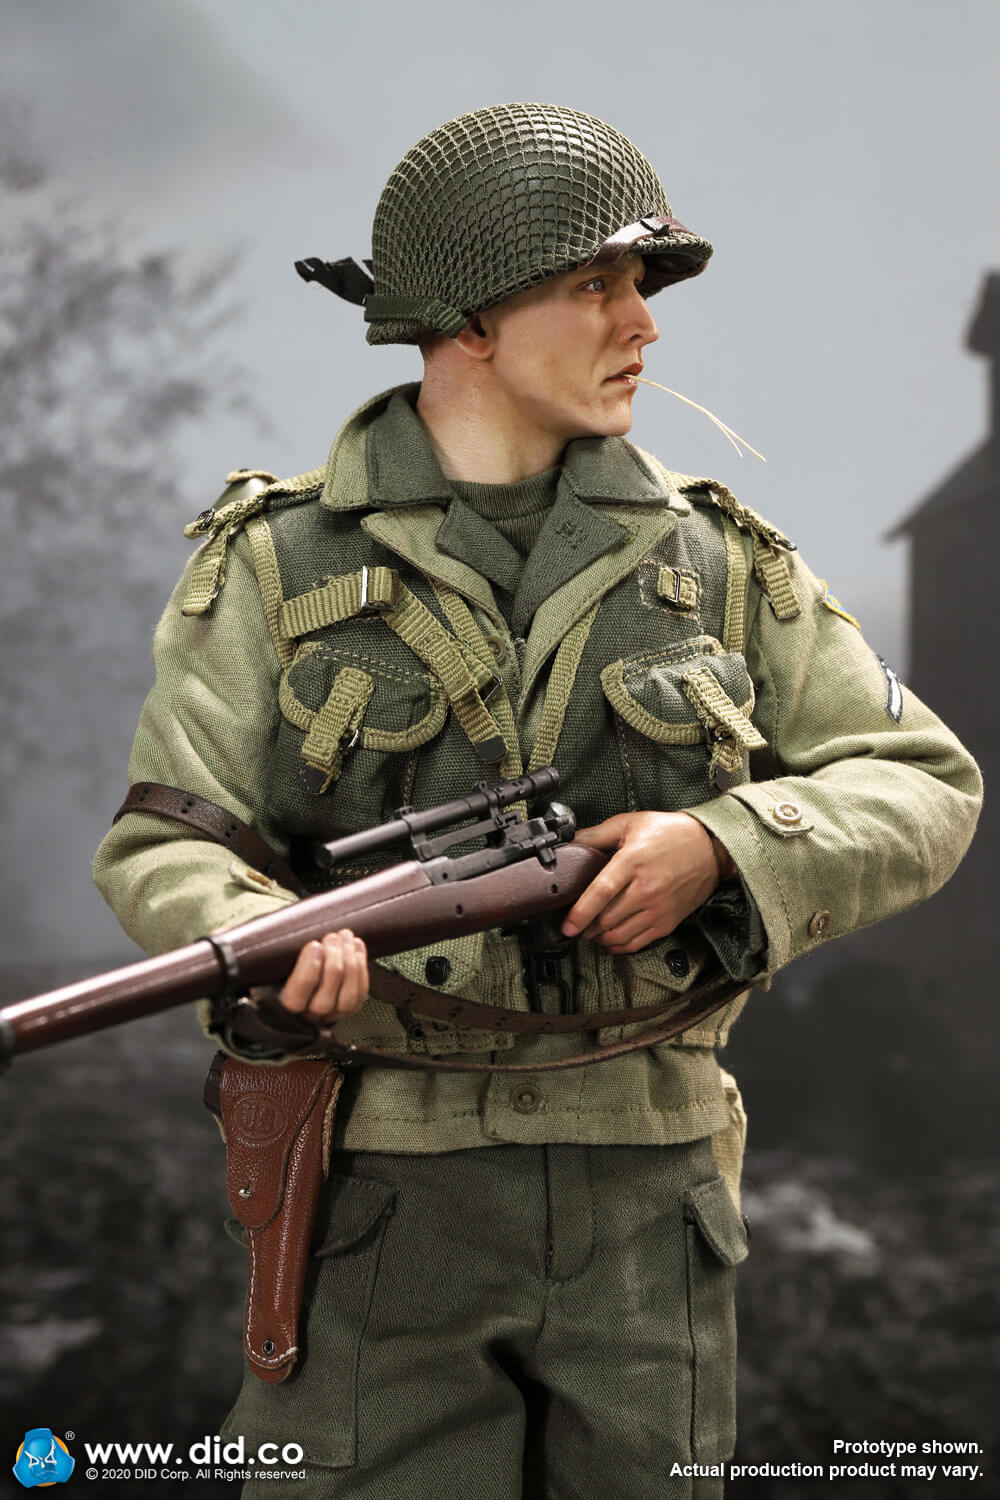 DiD - NEW PRODUCT: DiD: A80144 WWII US 2nd Ranger Battalion Series 4 Private Jackson 25107